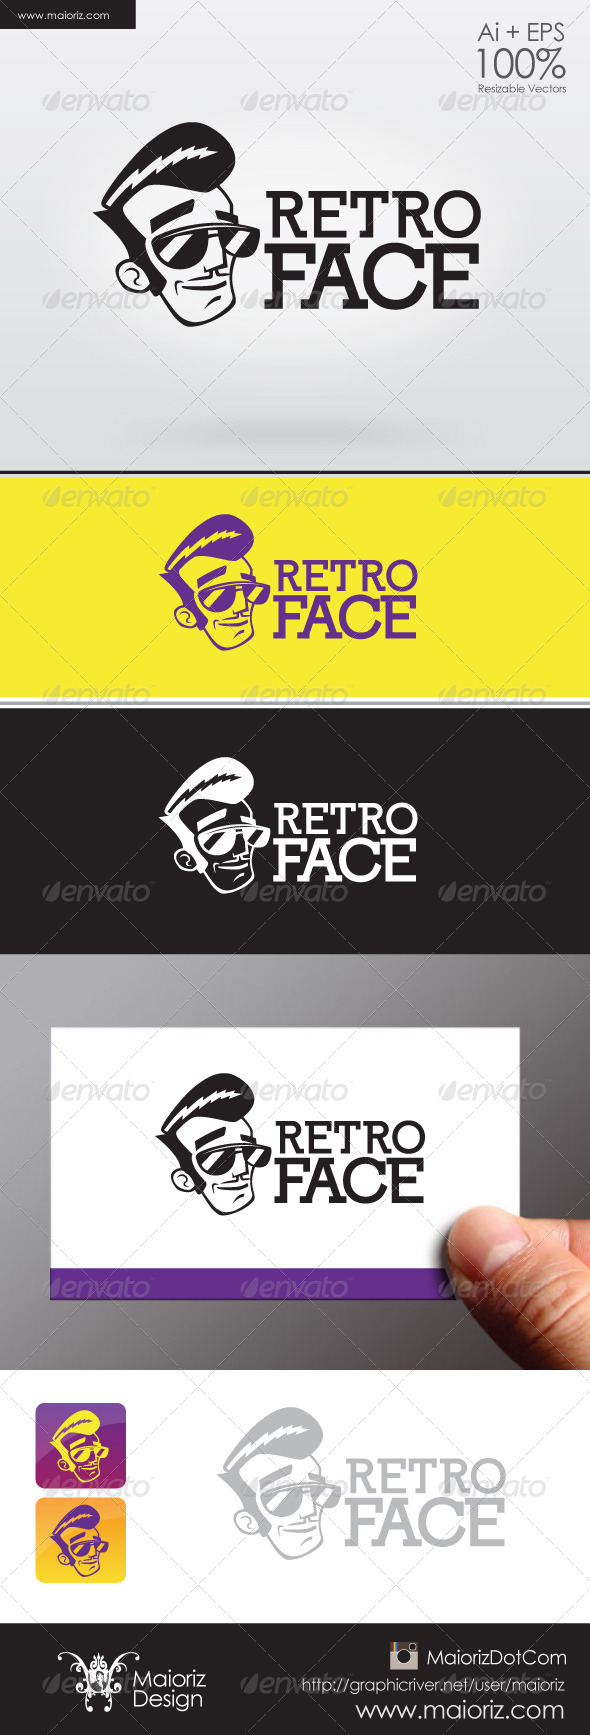 GraphicRiver Retro Face Logo 6262455